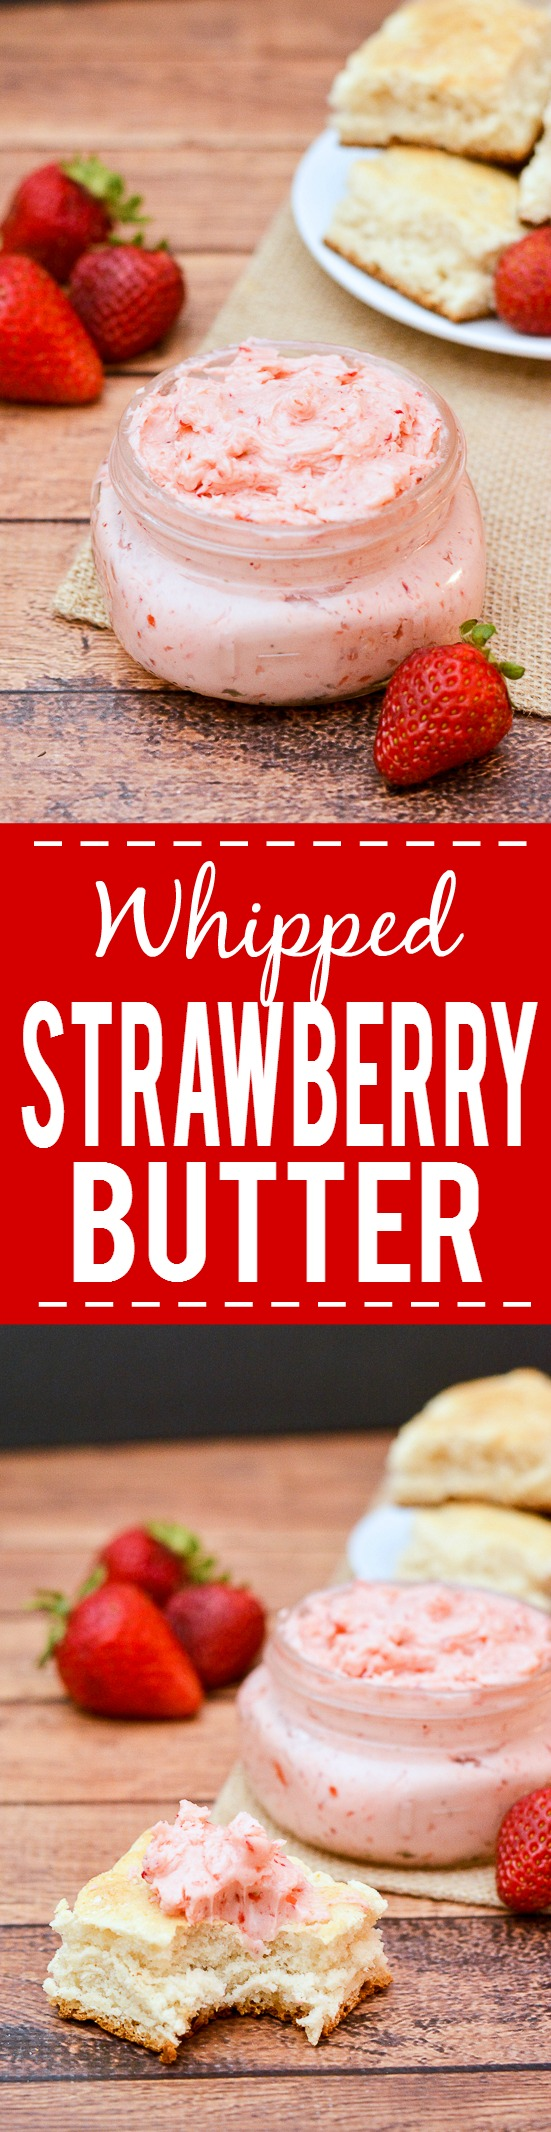 Whipped Strawberry Butter recipe - Sweet and fresh Whipped Strawberry Butter goes perfectly on your favorite roll, biscuit, or scone for a refreshing and yummy treat. Make it in just 10 minutes with 3 ingredients! Yummy and easy DIY gift idea too! Just put it in a mason jar and tie a bow with twine.